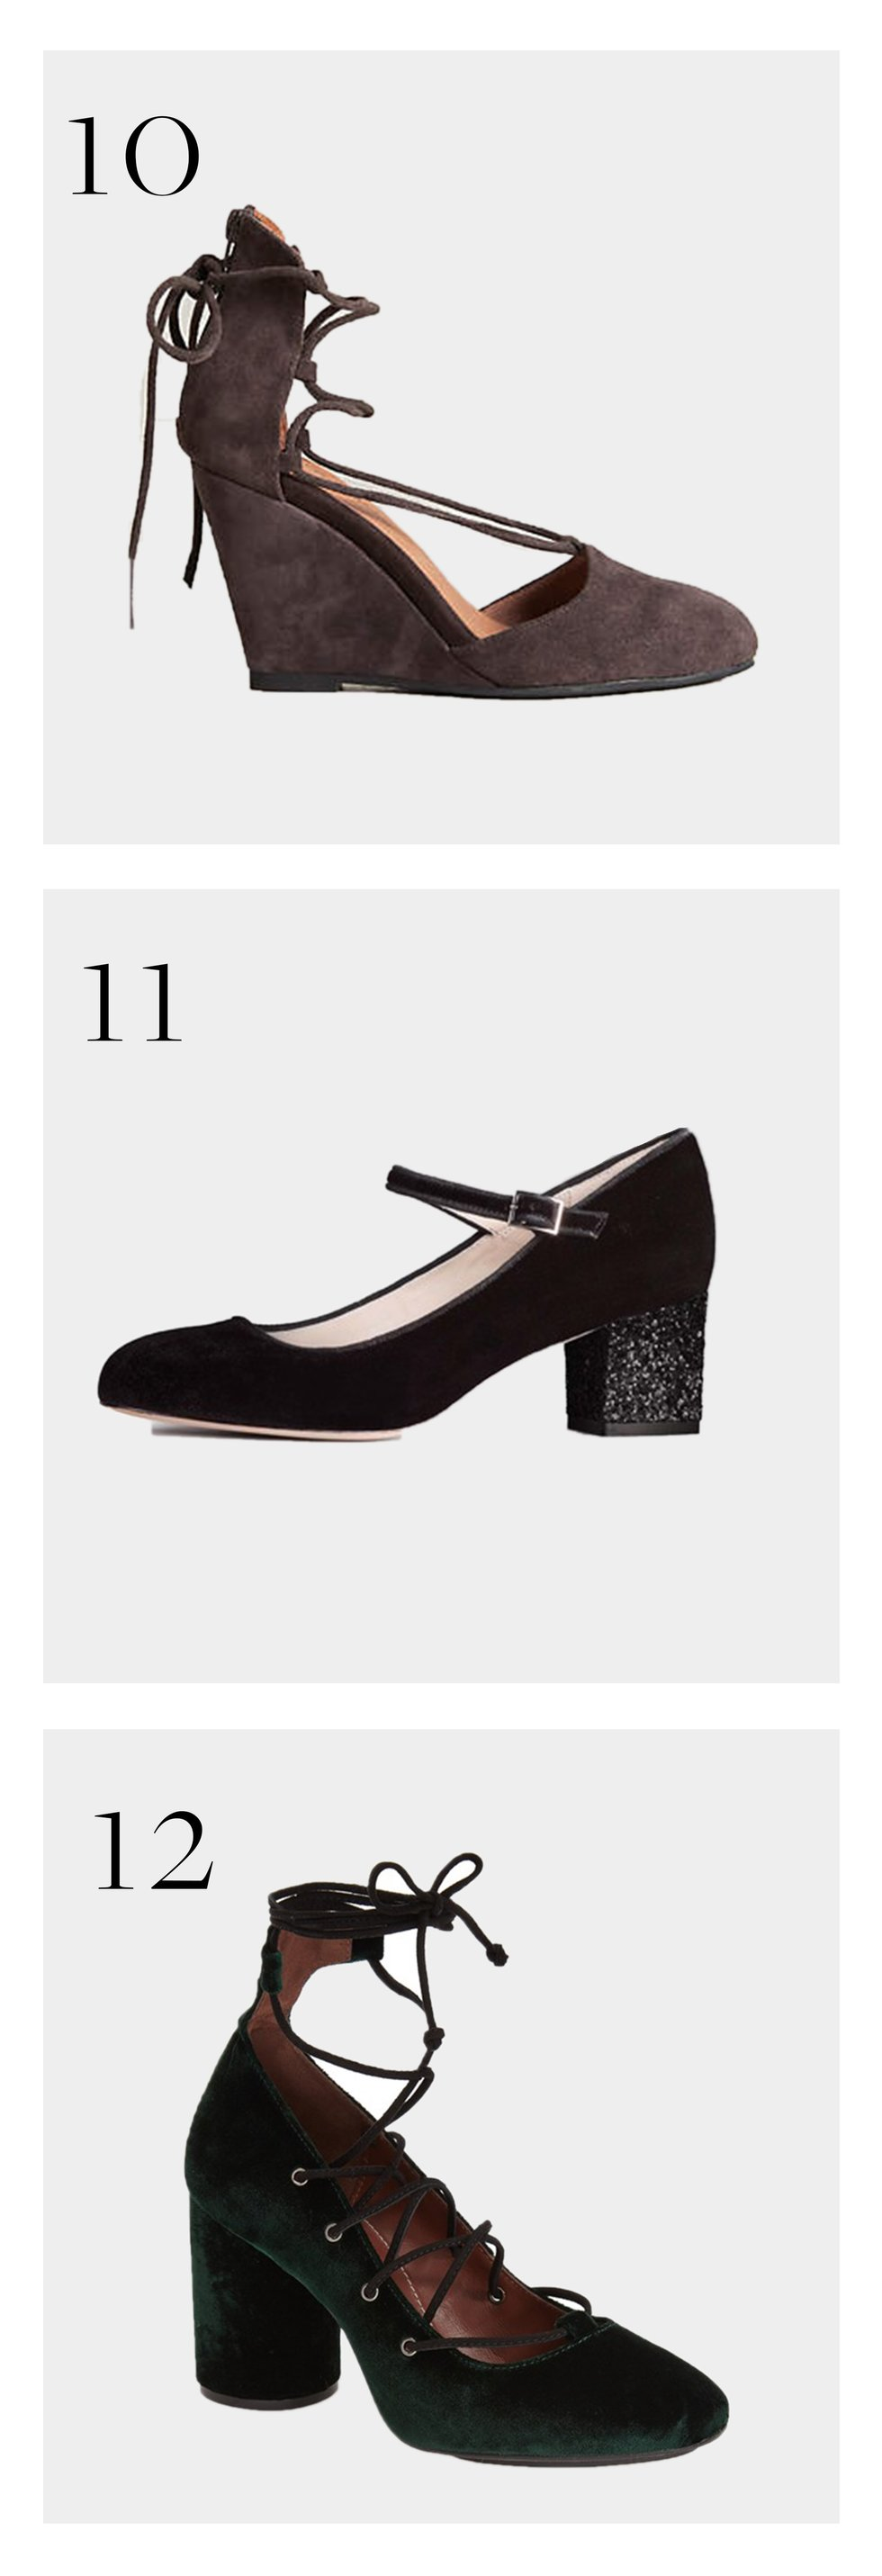 Chic Shoes For Moms Of Toddlers Motherly Mary Janes Straps Circle Block Pointed Toe Wedges Black Dress Holiday